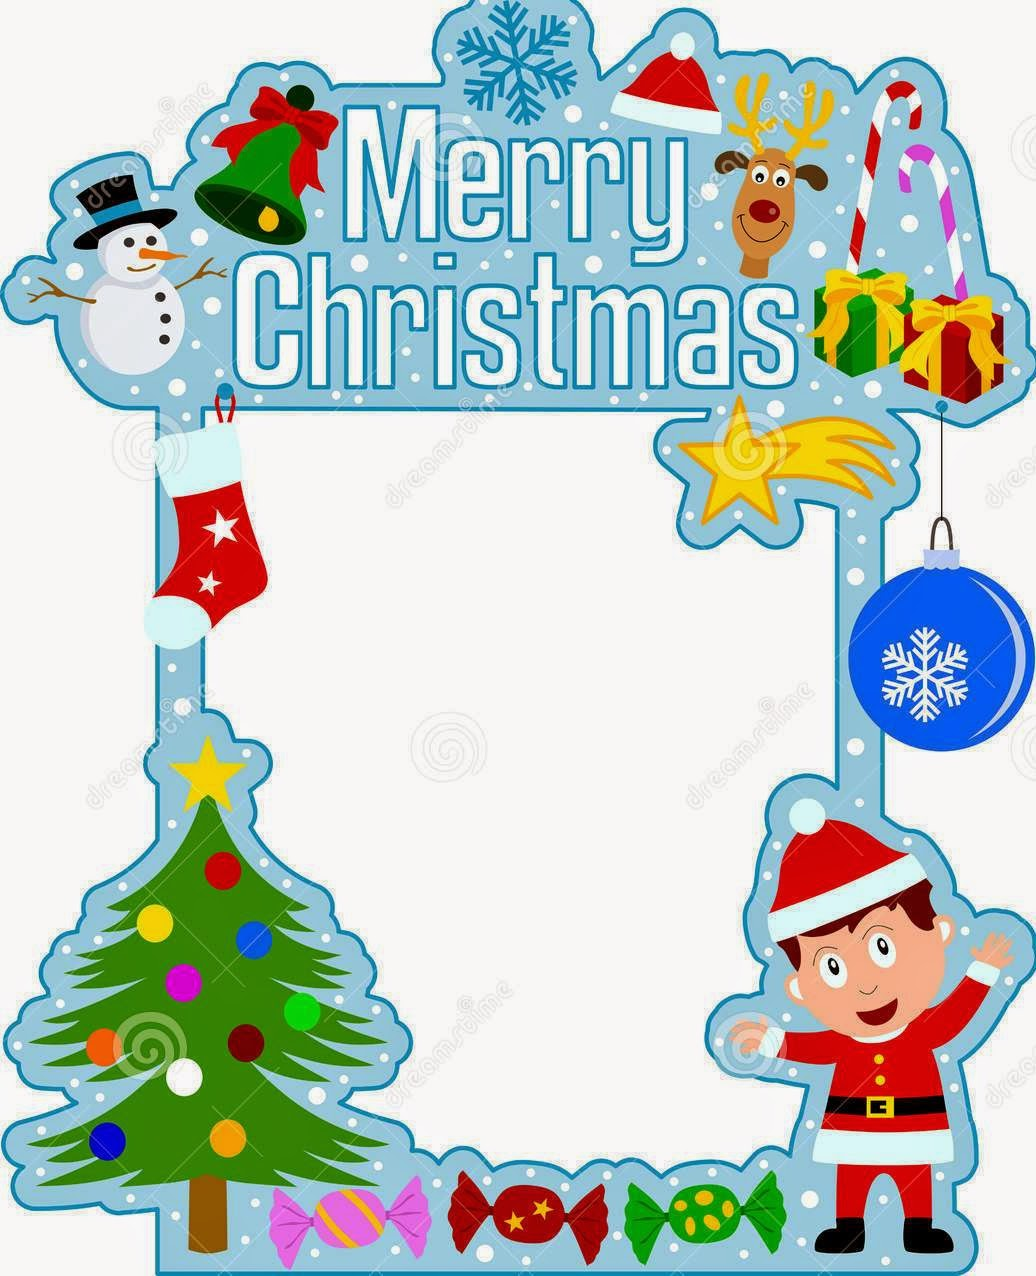 Merry Christmas 2015 Photo Frame